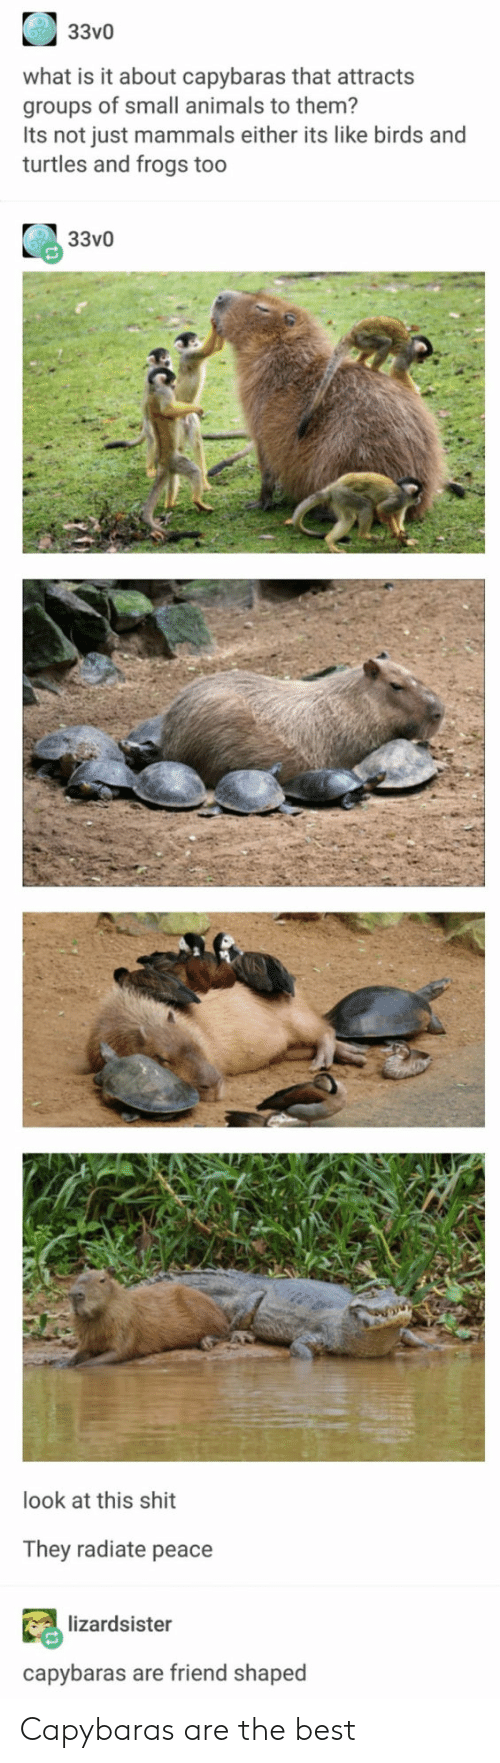 mammals: 33v0  what is it about capybaras that attracts  groups of small animals to them?  Its not just mammals either its like birds and  turtles and frogs too  33v0  look at this shit  They radiate peace  lizardsister  capybaras are friend shaped Capybaras are the best